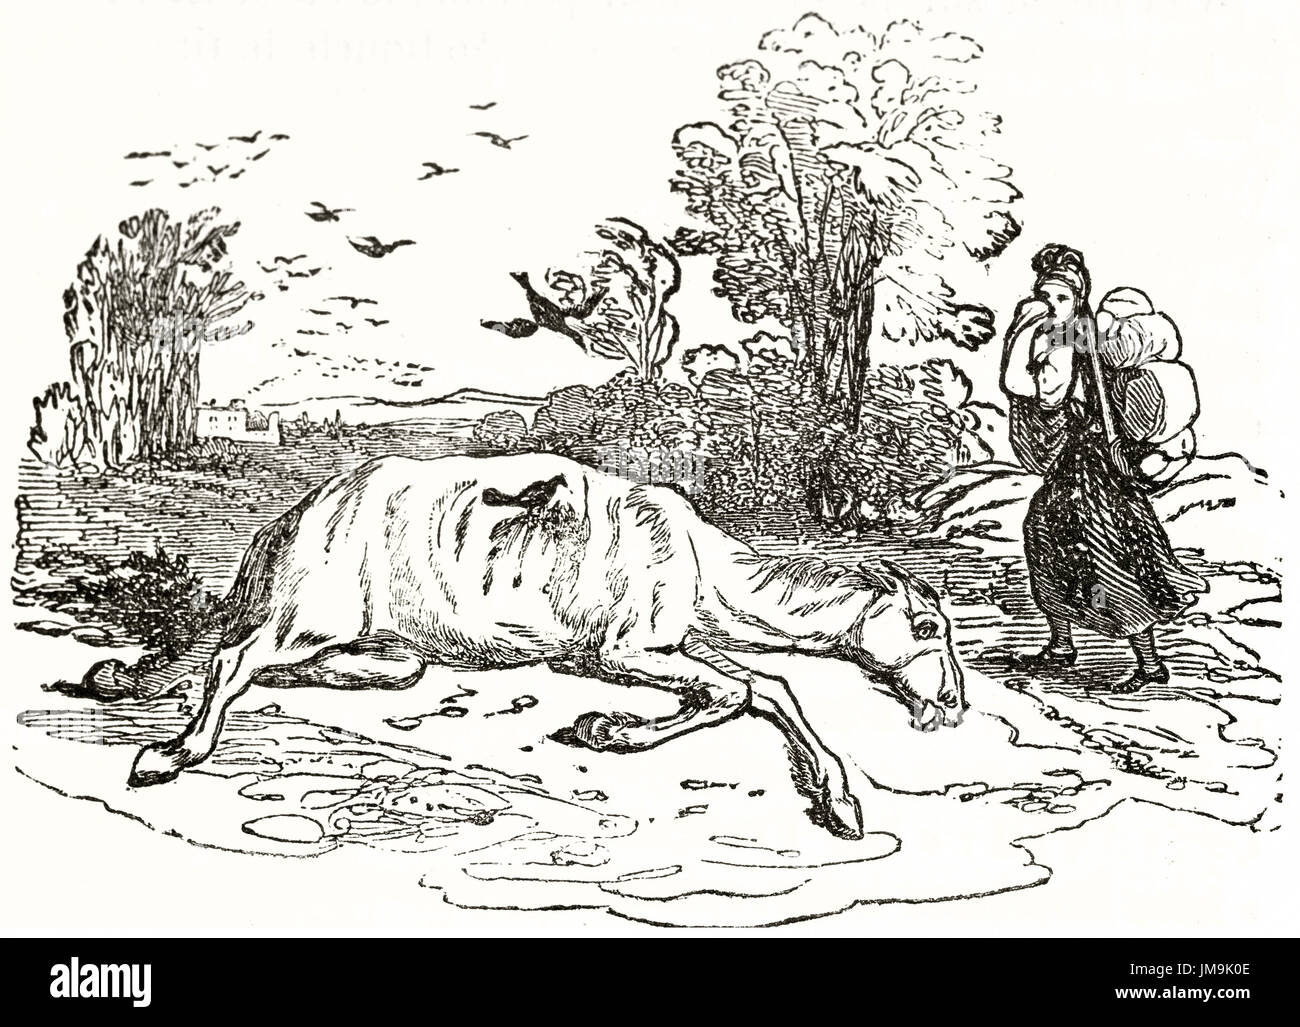 Old Illustration Of A Dead Horse By Unidentified Author Published Stock Photo Alamy